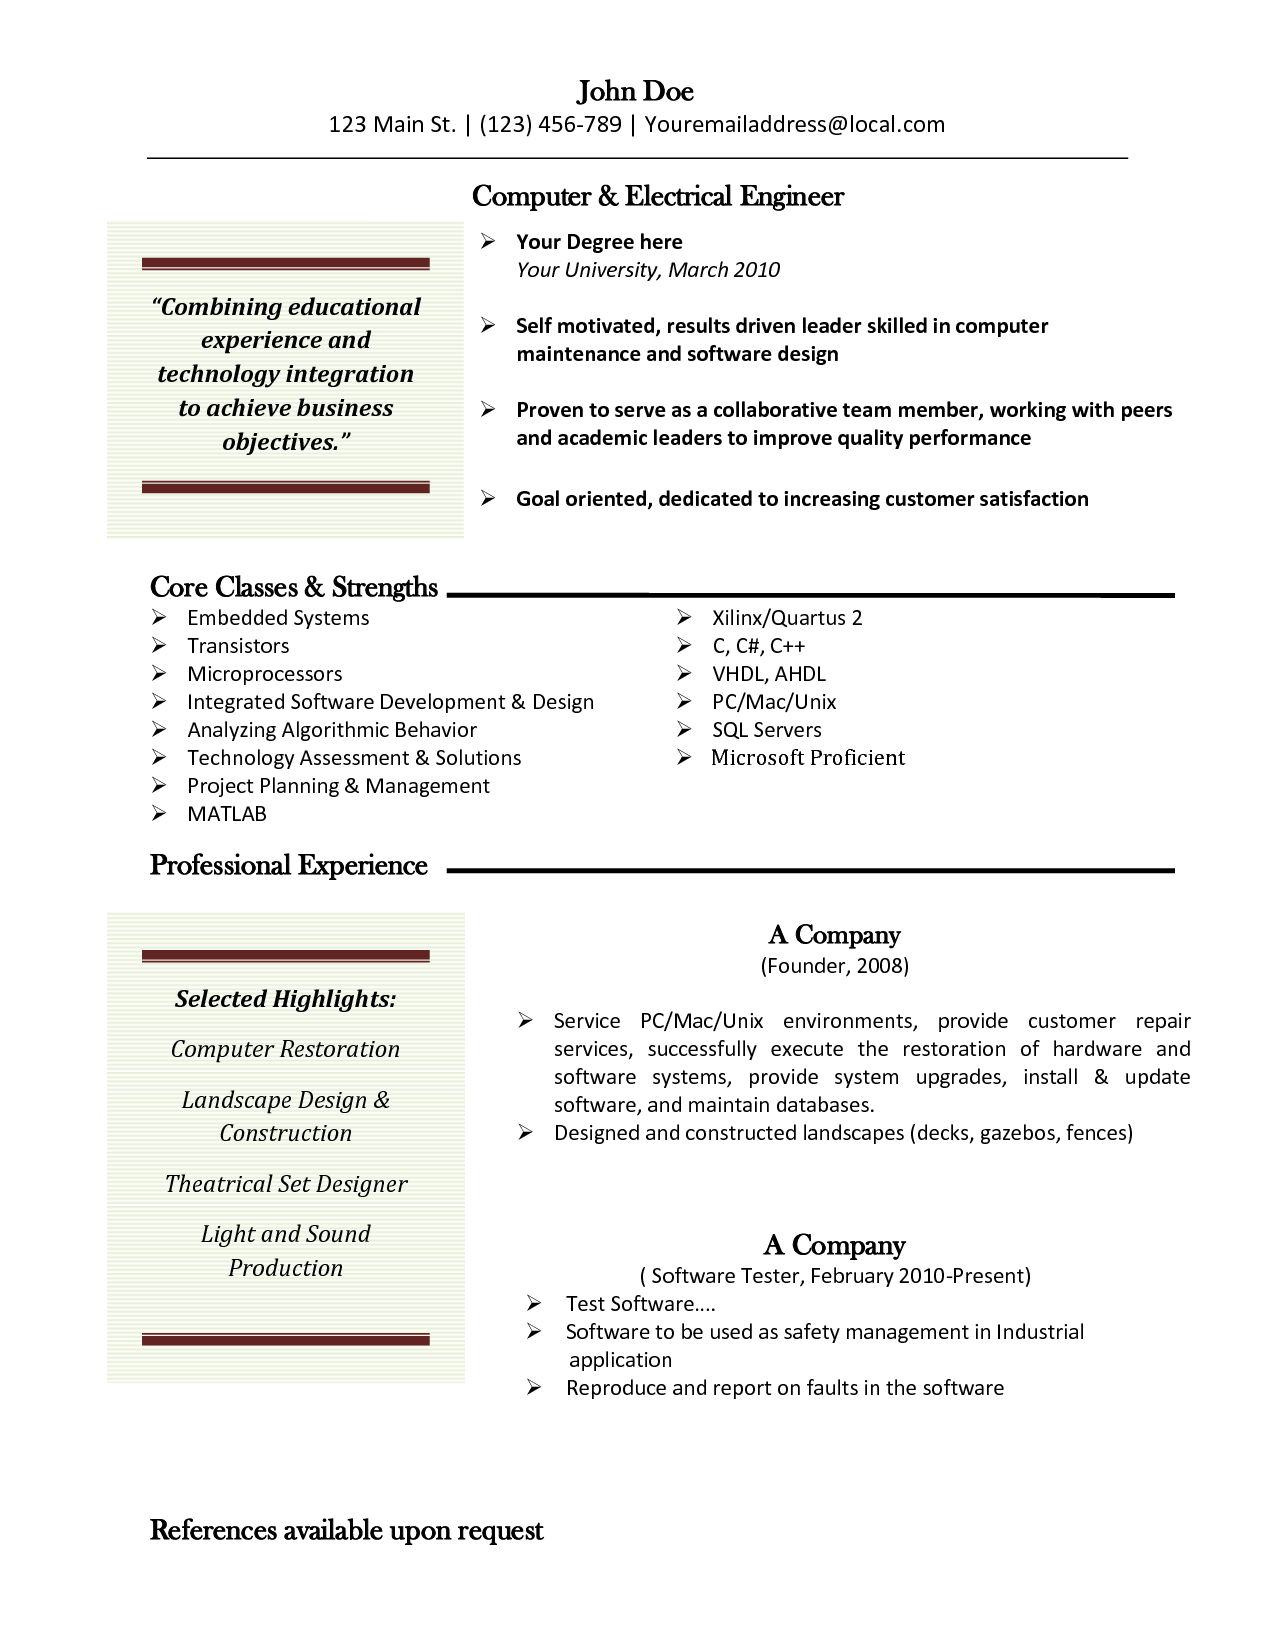 Amazing Free Resume Templates For Mac Best TemplateFree Resume Templates Cover  Letter Examples Ideas Free Resume Templates For Mac